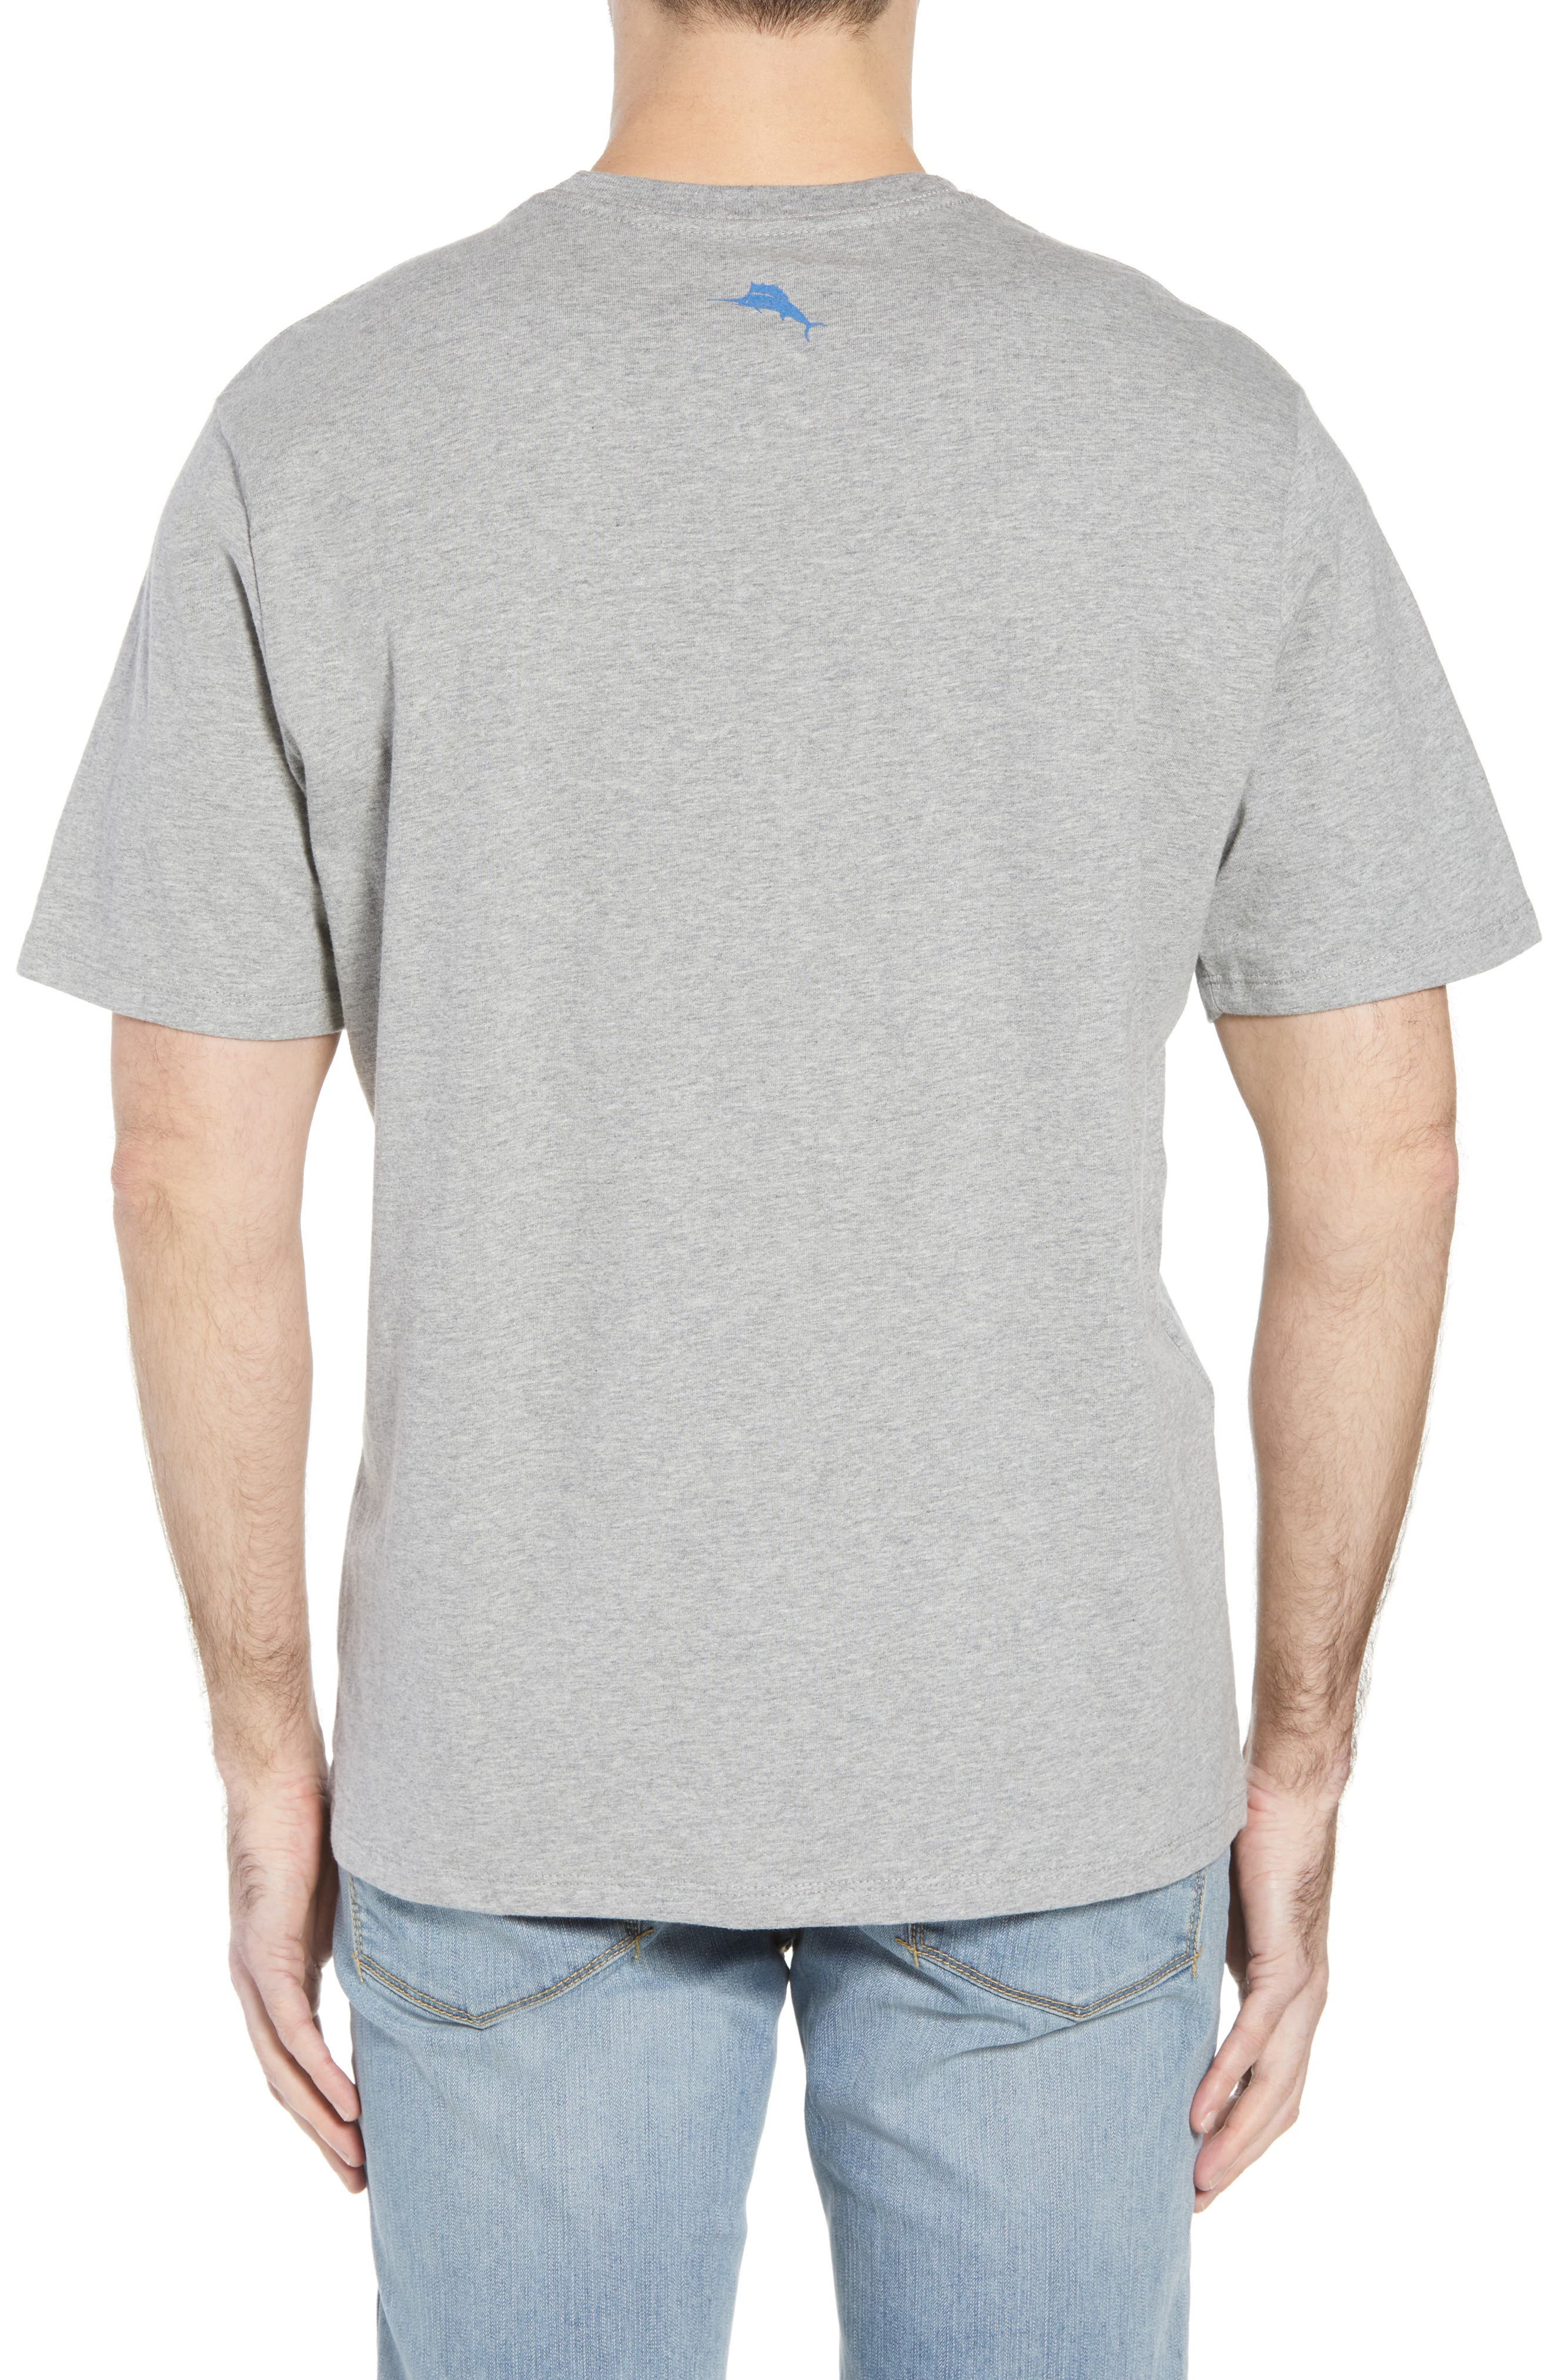 Bourbon of Proof Graphic T-Shirt,                             Alternate thumbnail 2, color,                             GREY HEATHER